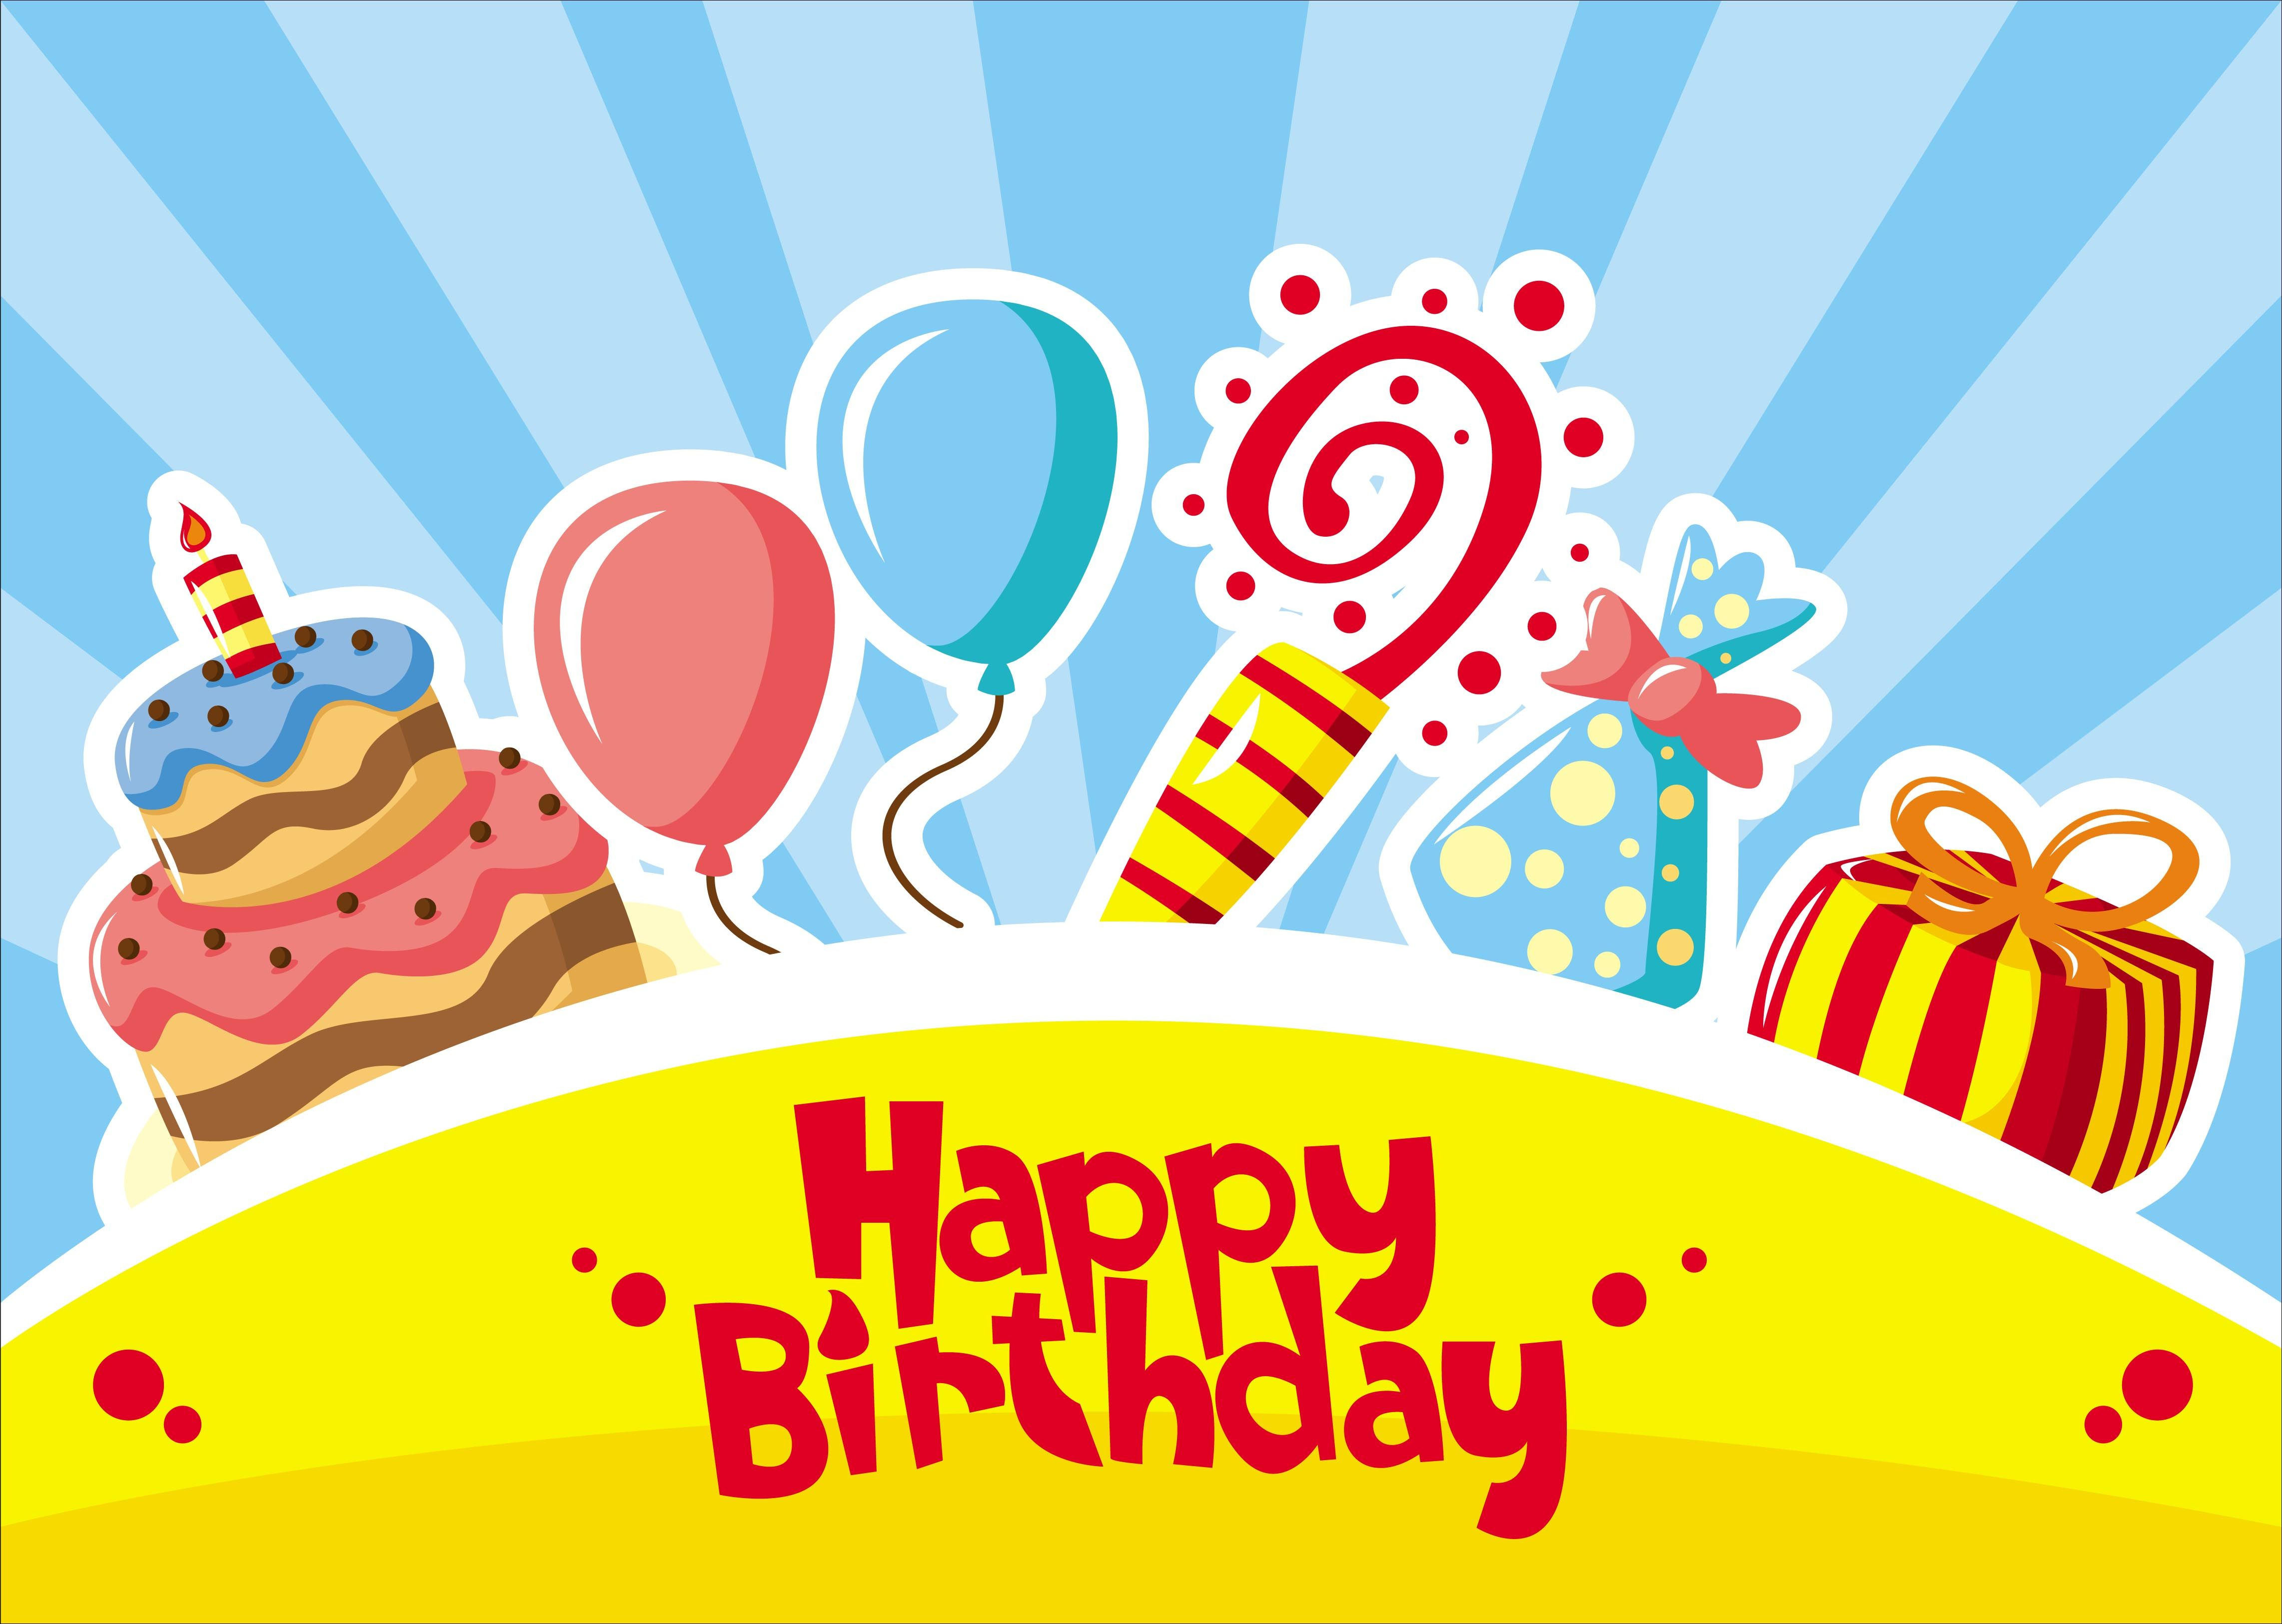 Happy birthday song download – Birthday Singing Card